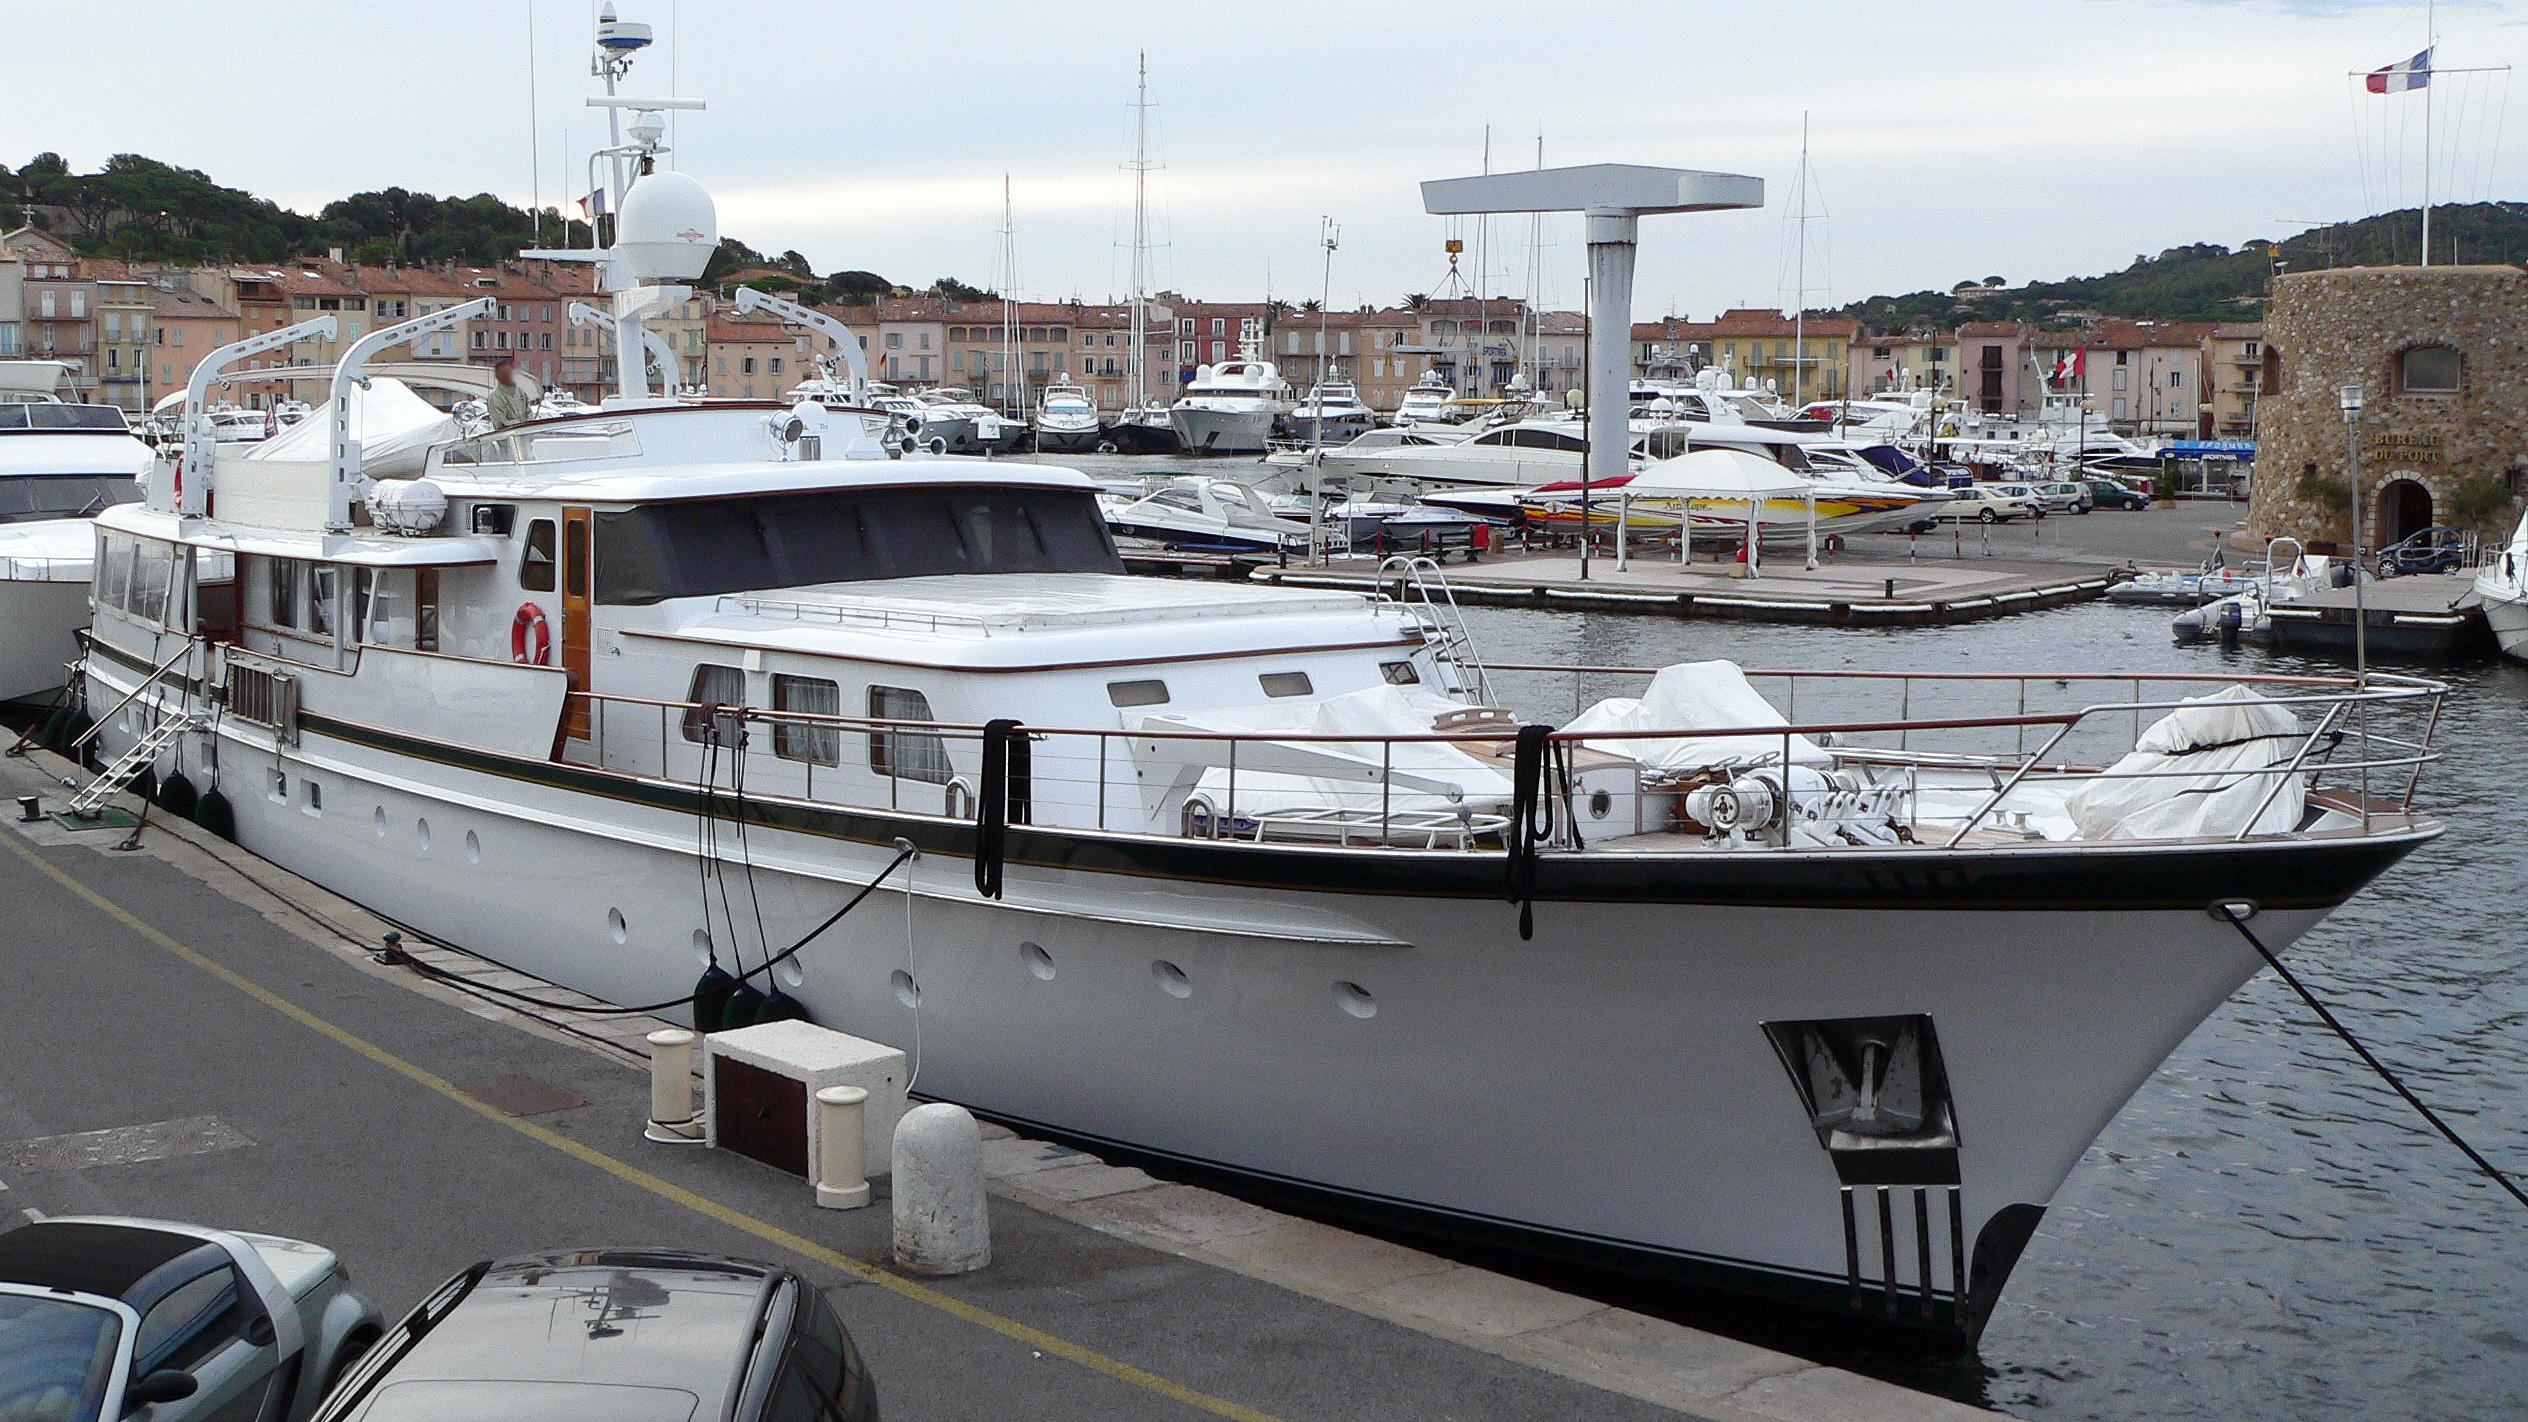 oncle-paul-motor-yacht-feadship-1973-34m-bow